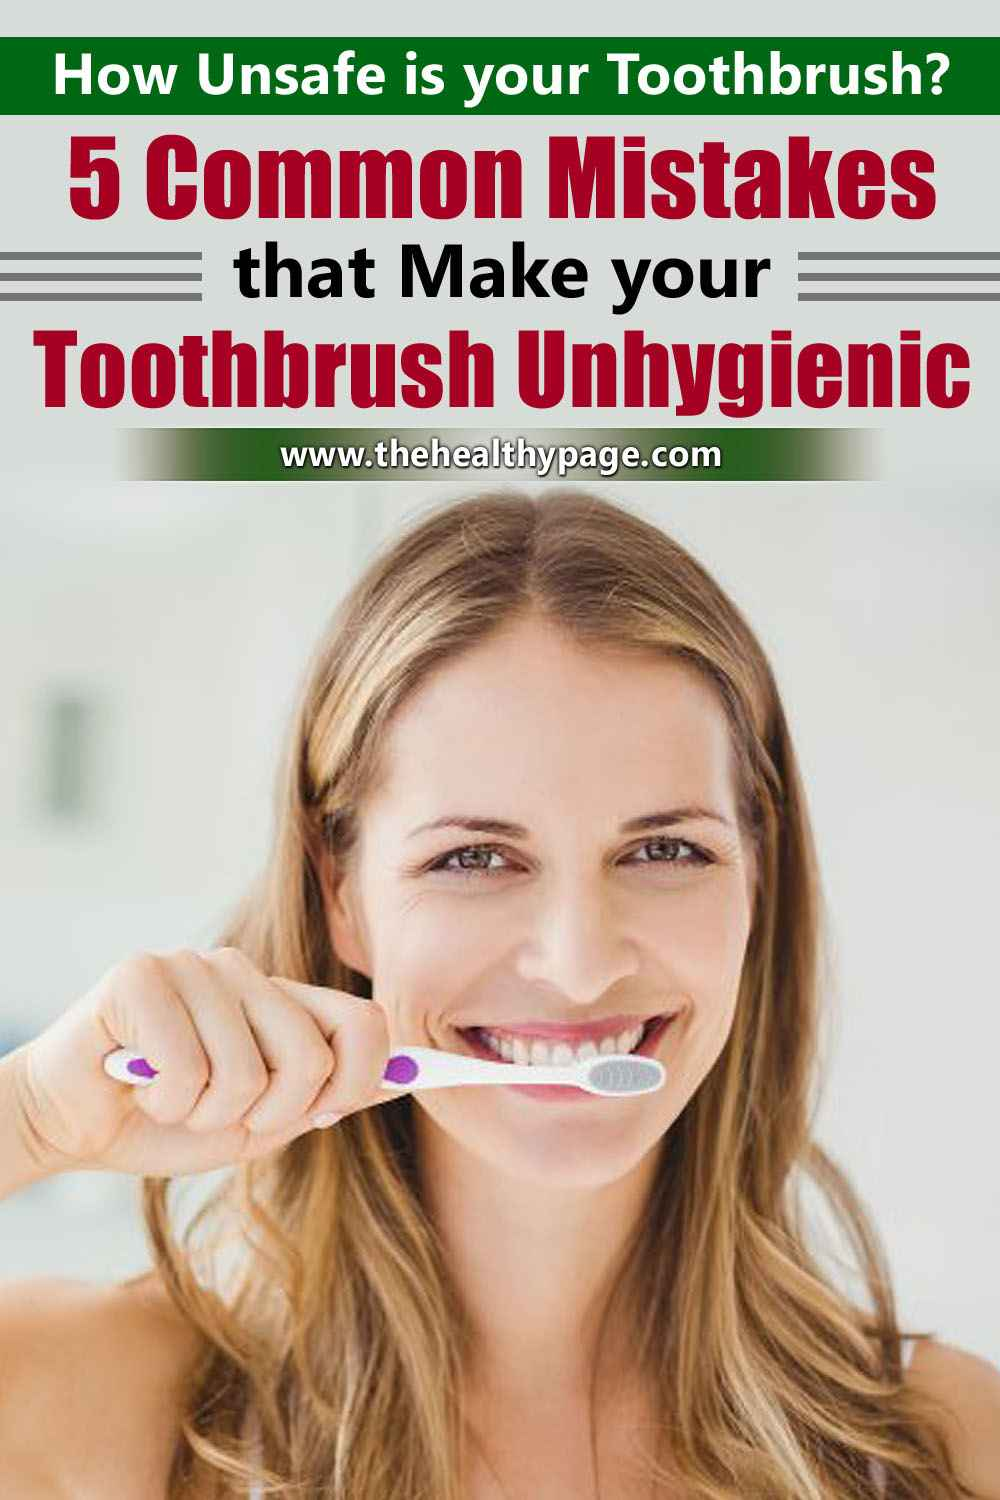 How Unsafe is your Toothbrush? 5 Common Mistakes that Make your Toothbrush Unhygienic